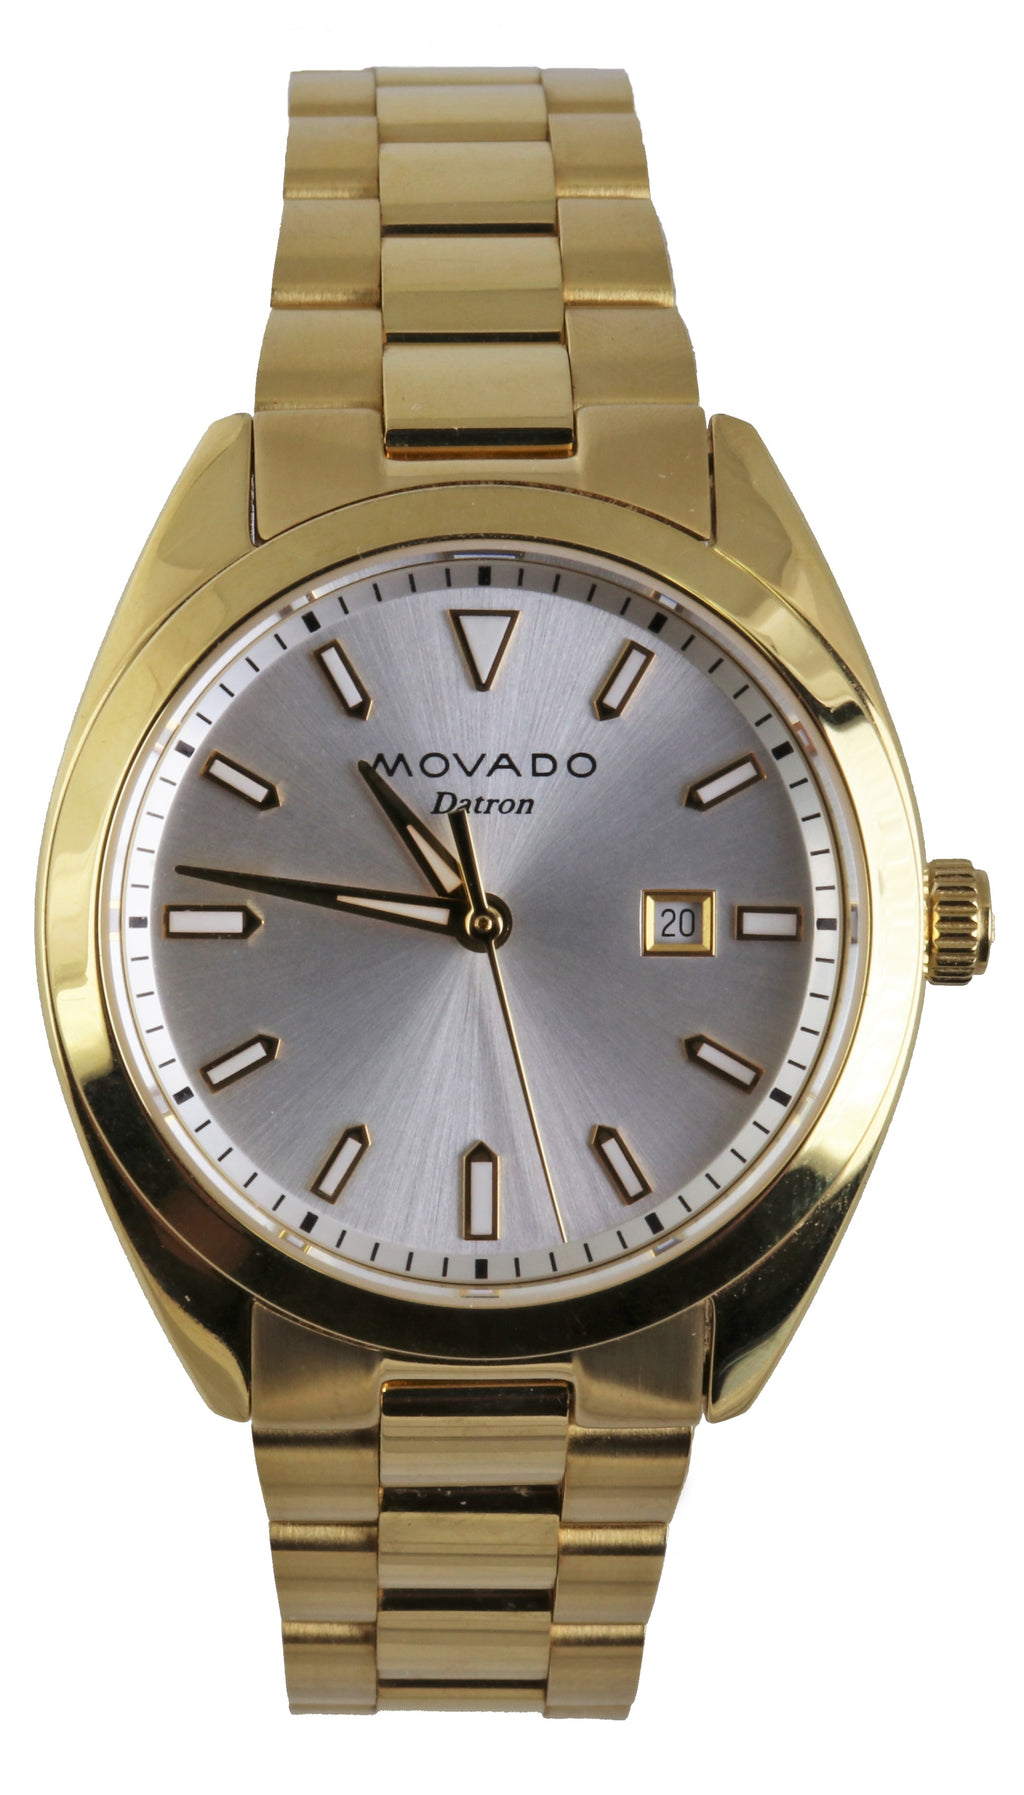 Ladies Movado Heritage Series Datron Gold Plated Quartz 31mm Watch